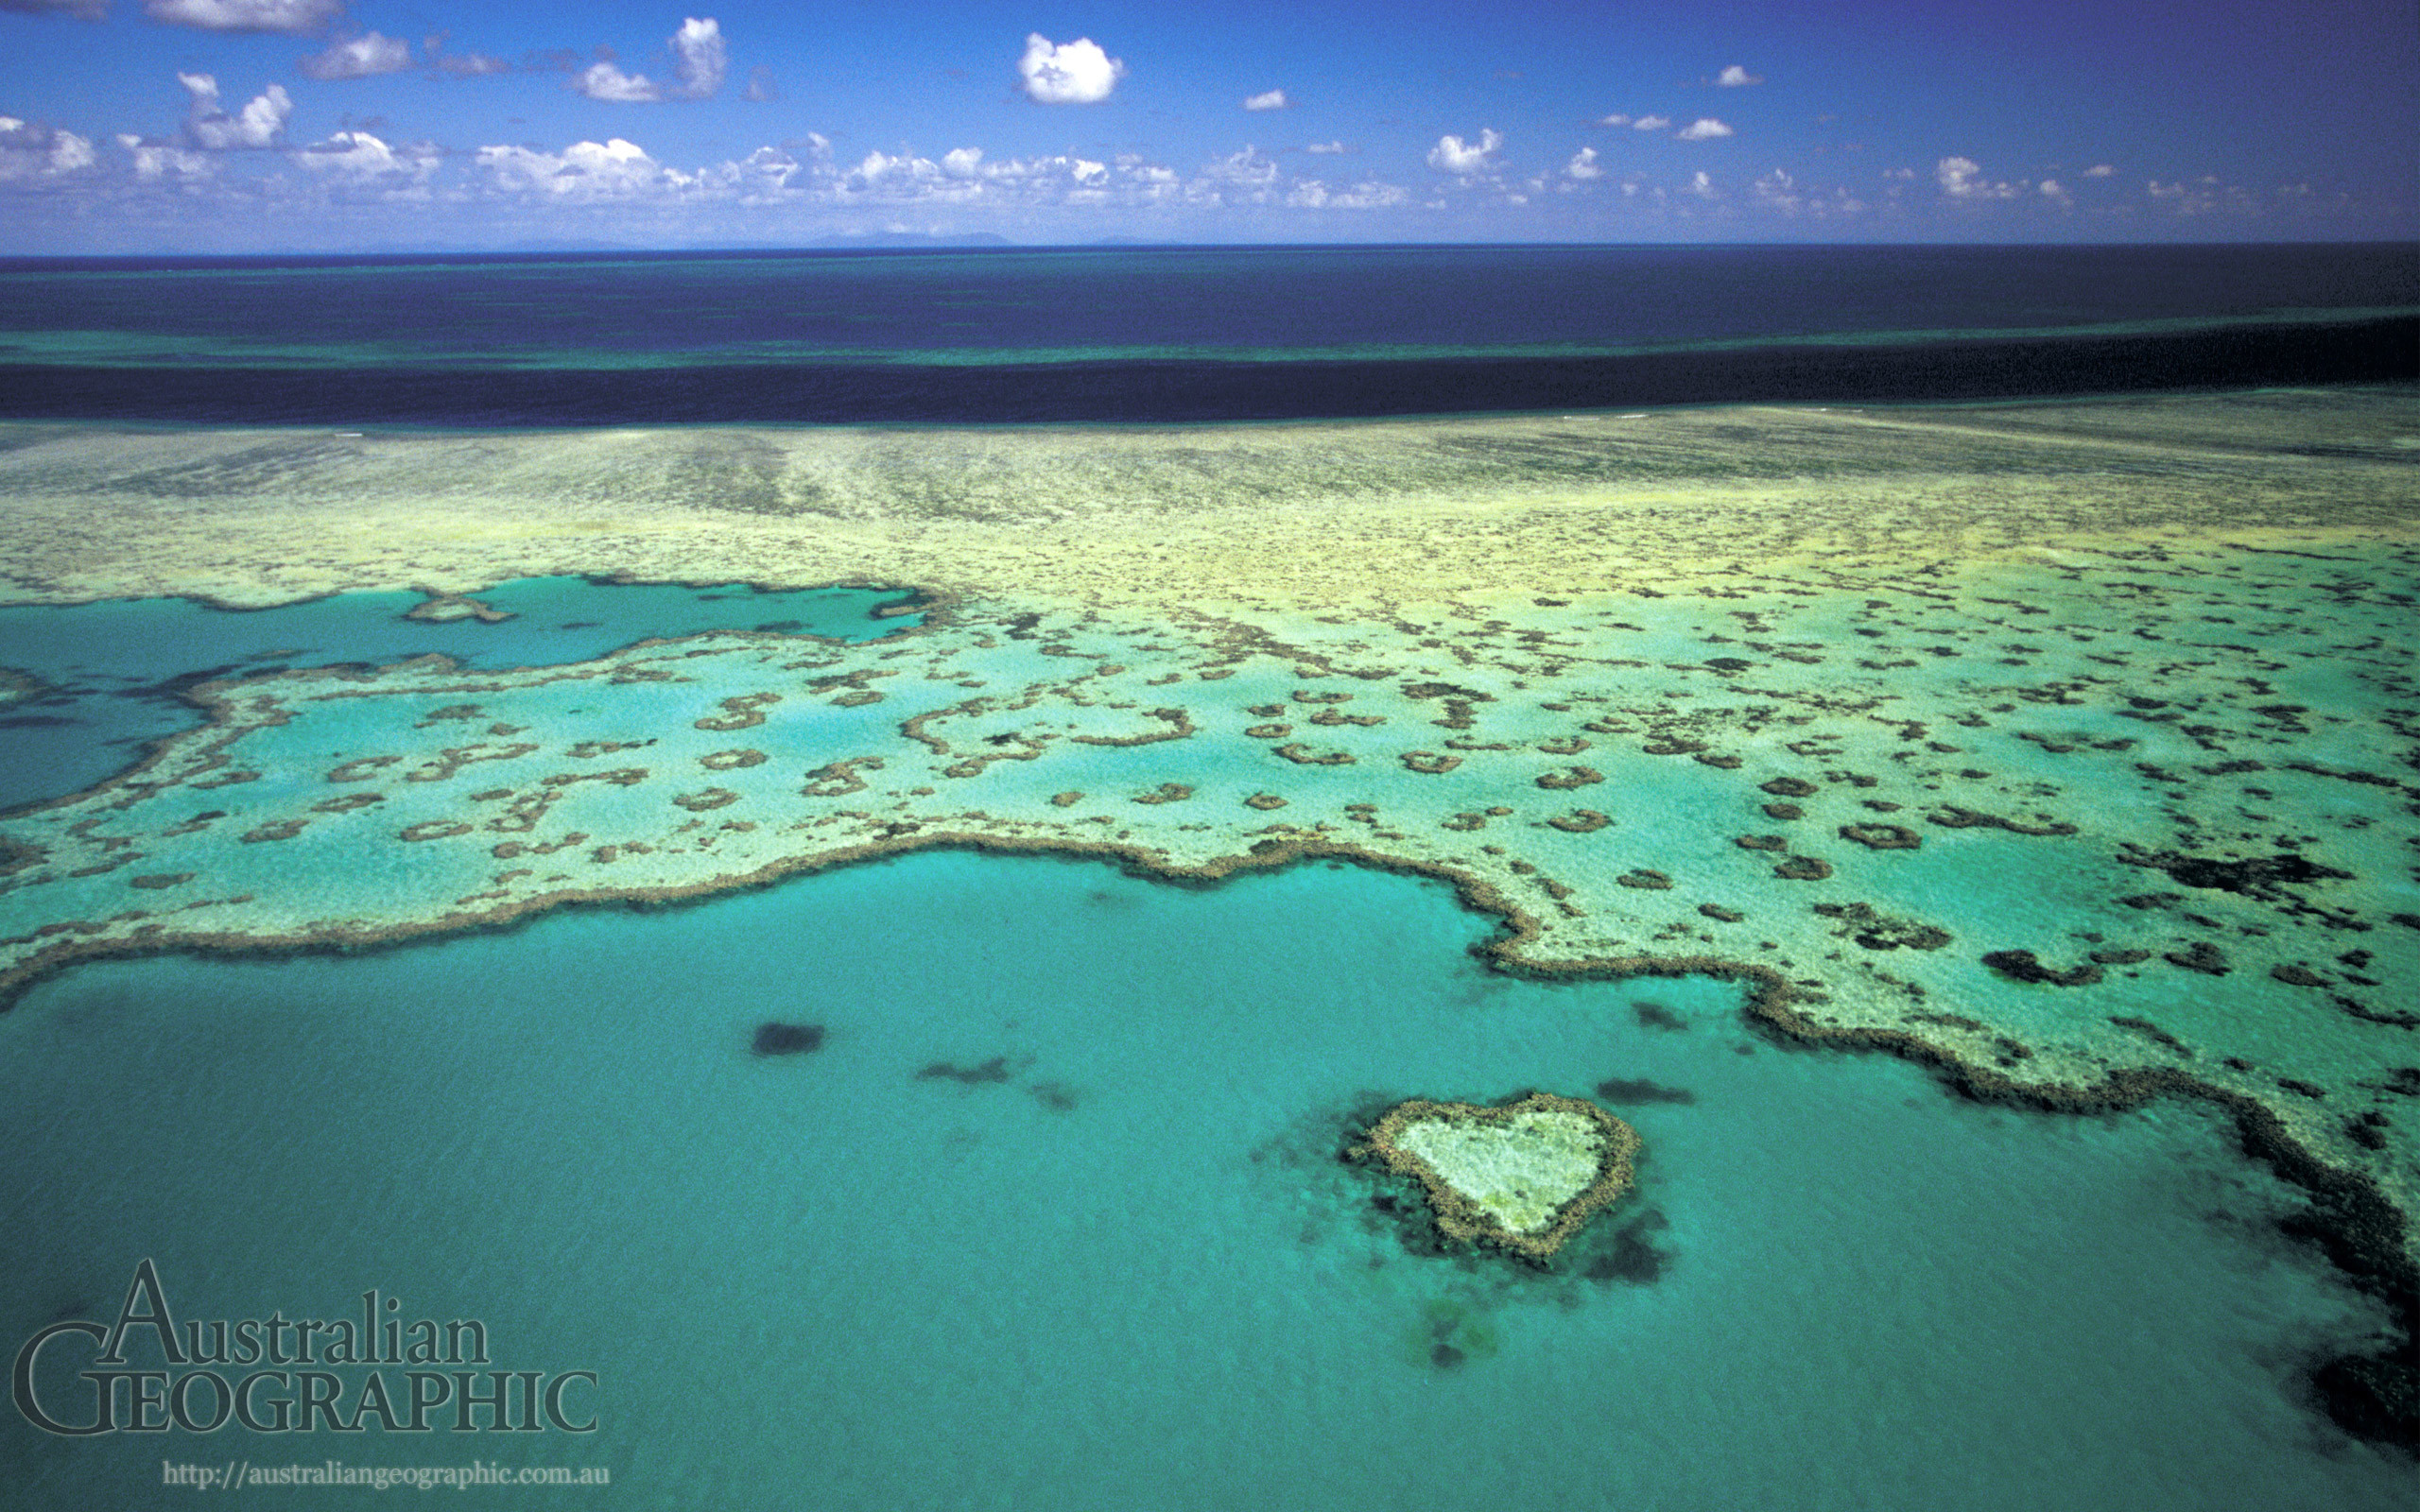 2560x1600 Wallpapers. Heart Reef, Great Barrier Reef, QLD